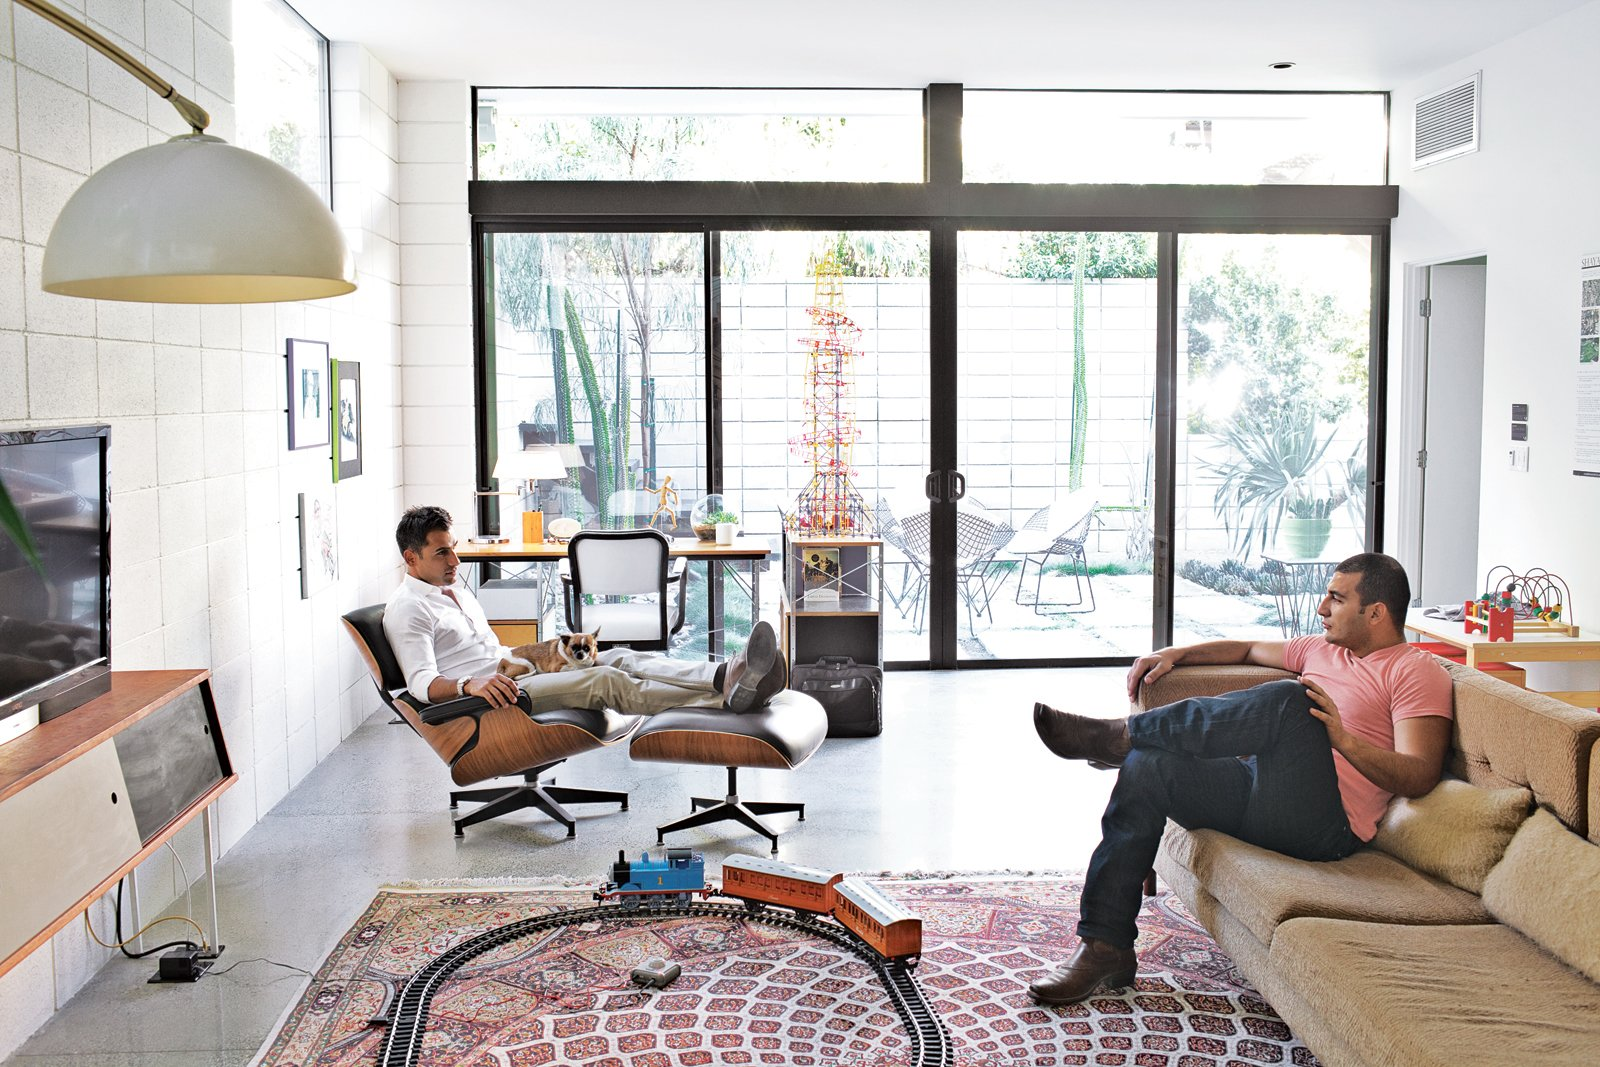 """Brothers Nima and Soheil relax in the family room on an Eames lounge chair and a custom sofa they designed. """"Mid-century architecture draws the outdoor environment indoors,"""" says Soheil. """"There's a lot of natural light, a lot of ventilation."""""""